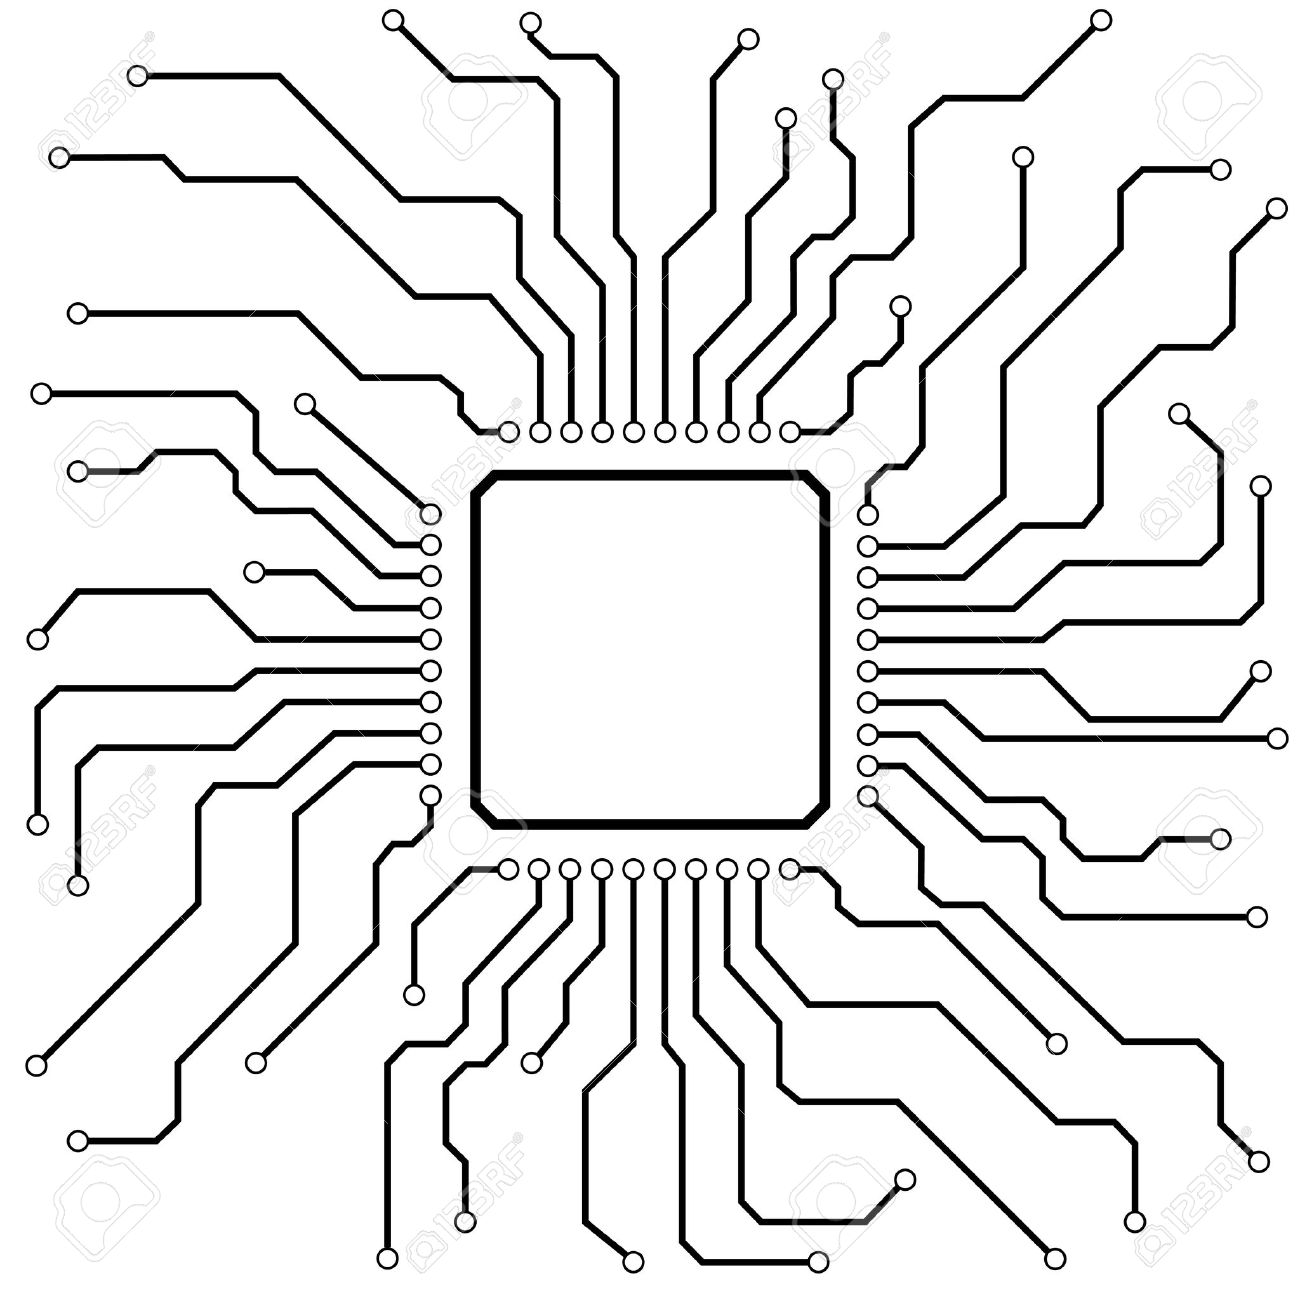 Illustration Of A Hi-tech Circuit Board Royalty Free Cliparts ...